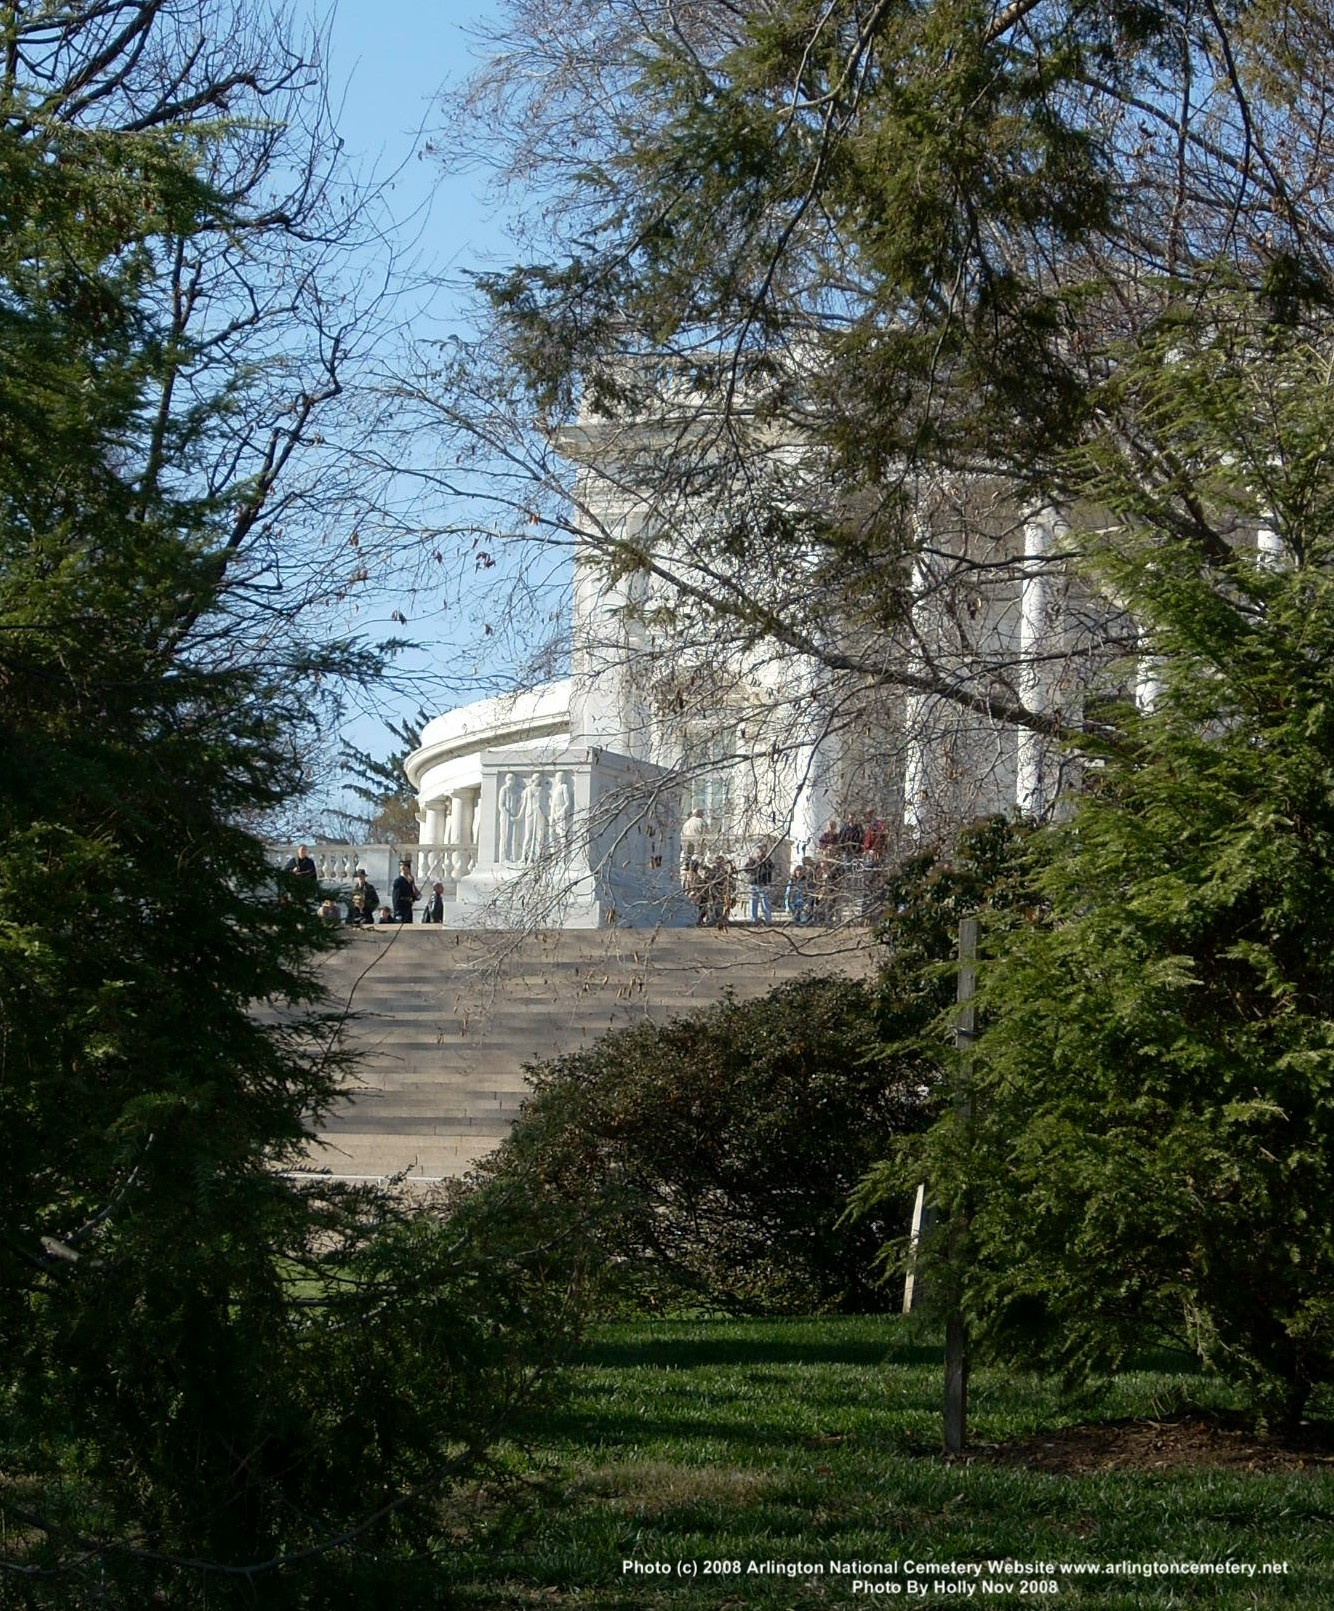 View Of The Tomb Of The Unknowns From Section 7-A Of Arlington National Cemetery, Photo By Holly, November 2008